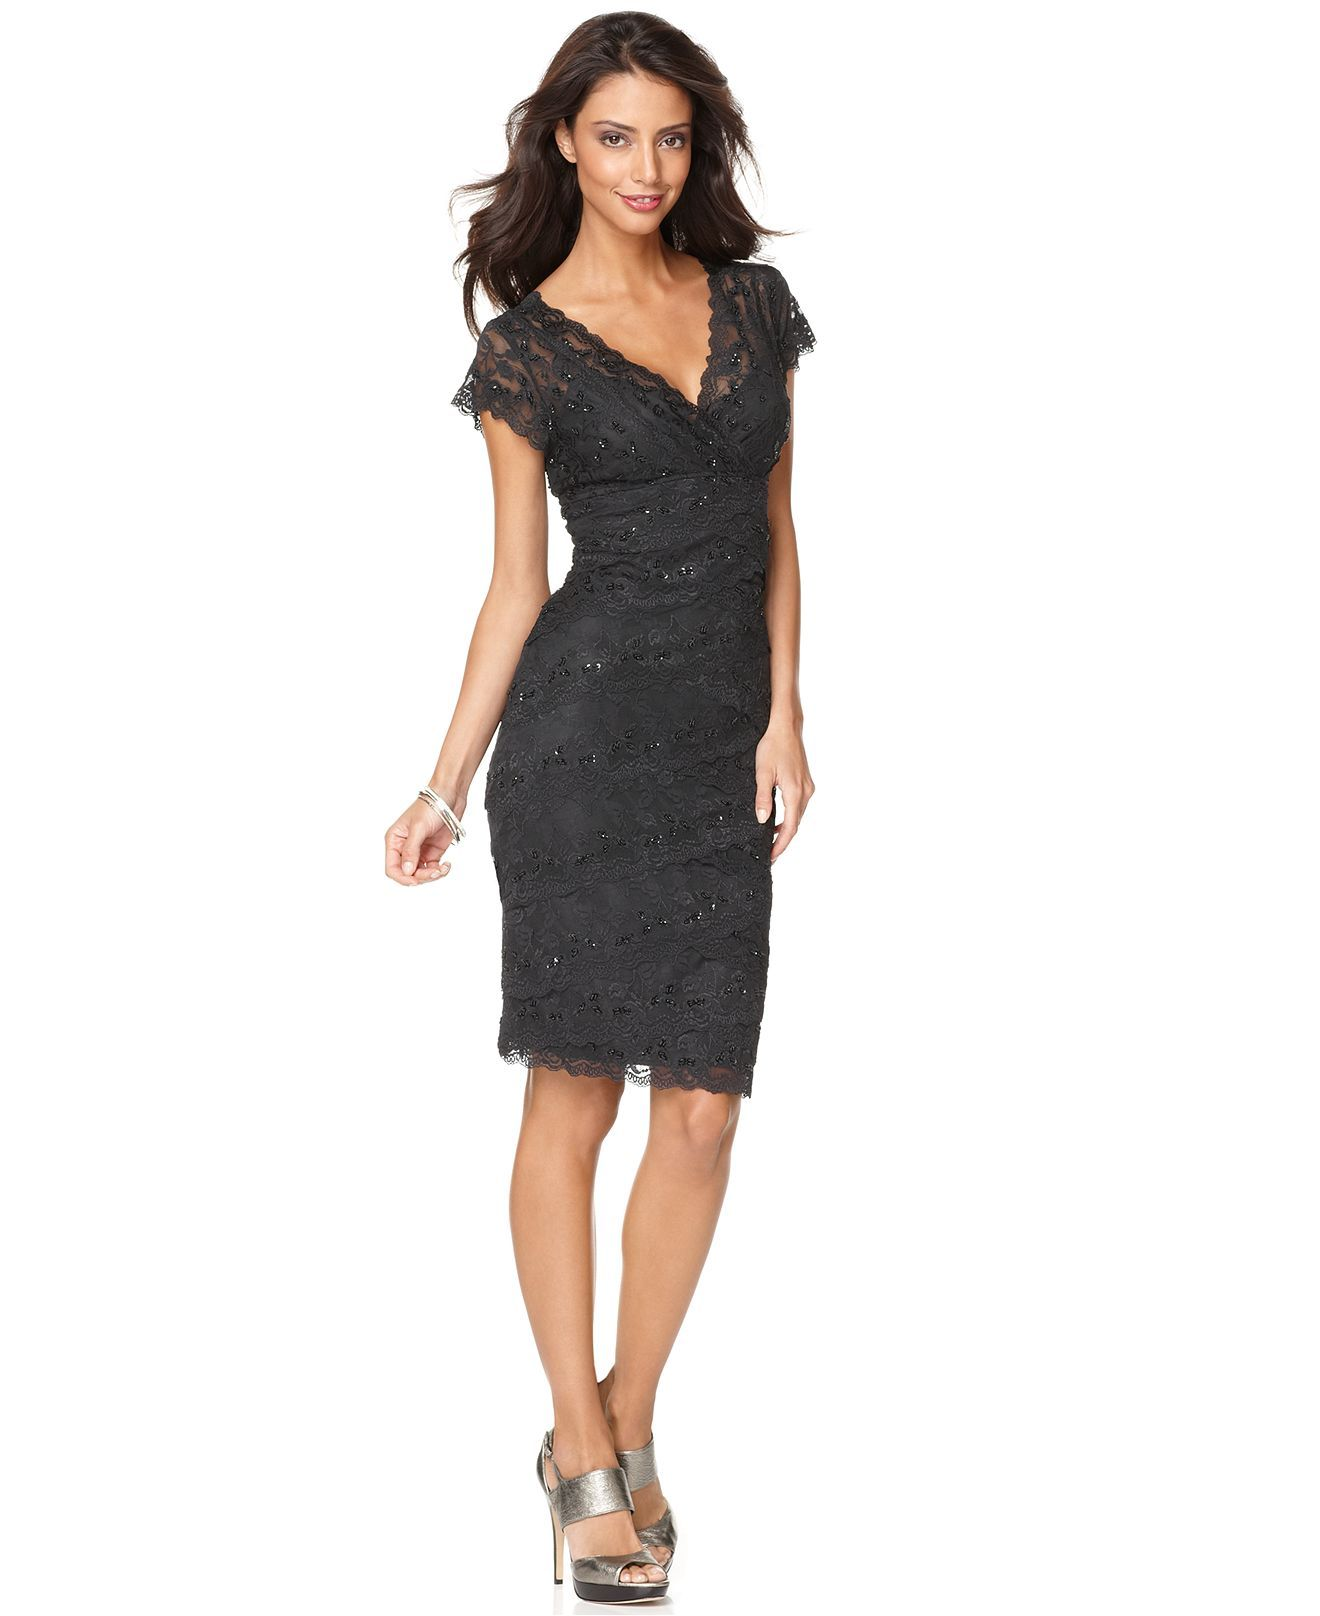 Marina dress cap sleeve lace cocktail dress womens for Cocktail dress with sleeves for wedding